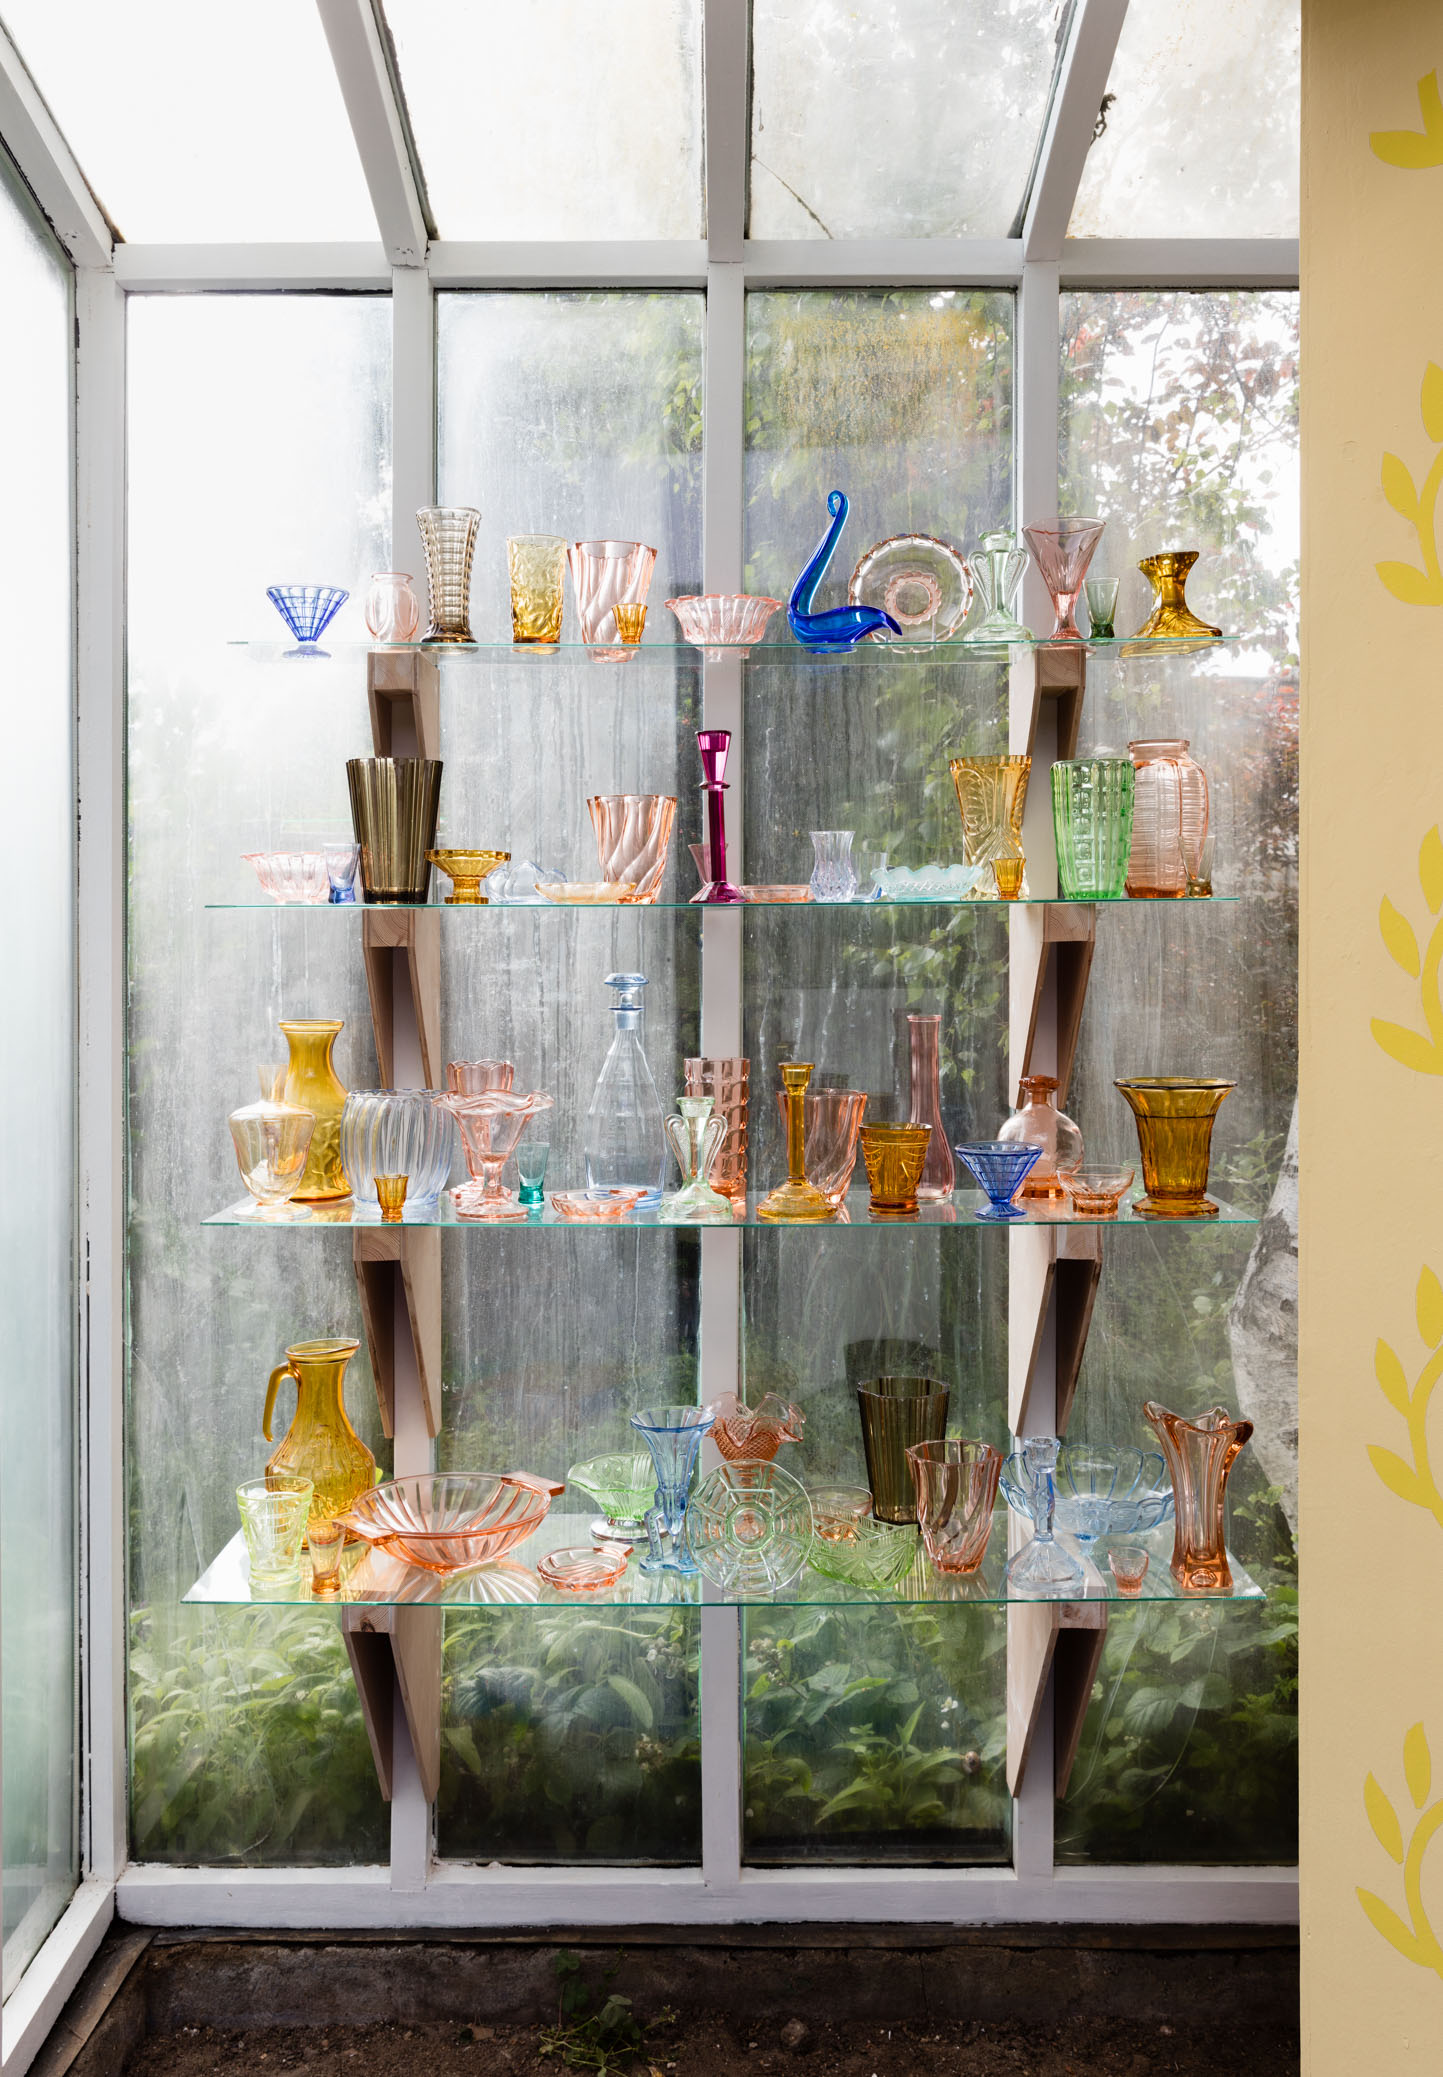 Marc Camille Chaimowicz, 69 Pieces of Coloured Glass (For BP), 2016 (Tears Shared 8)